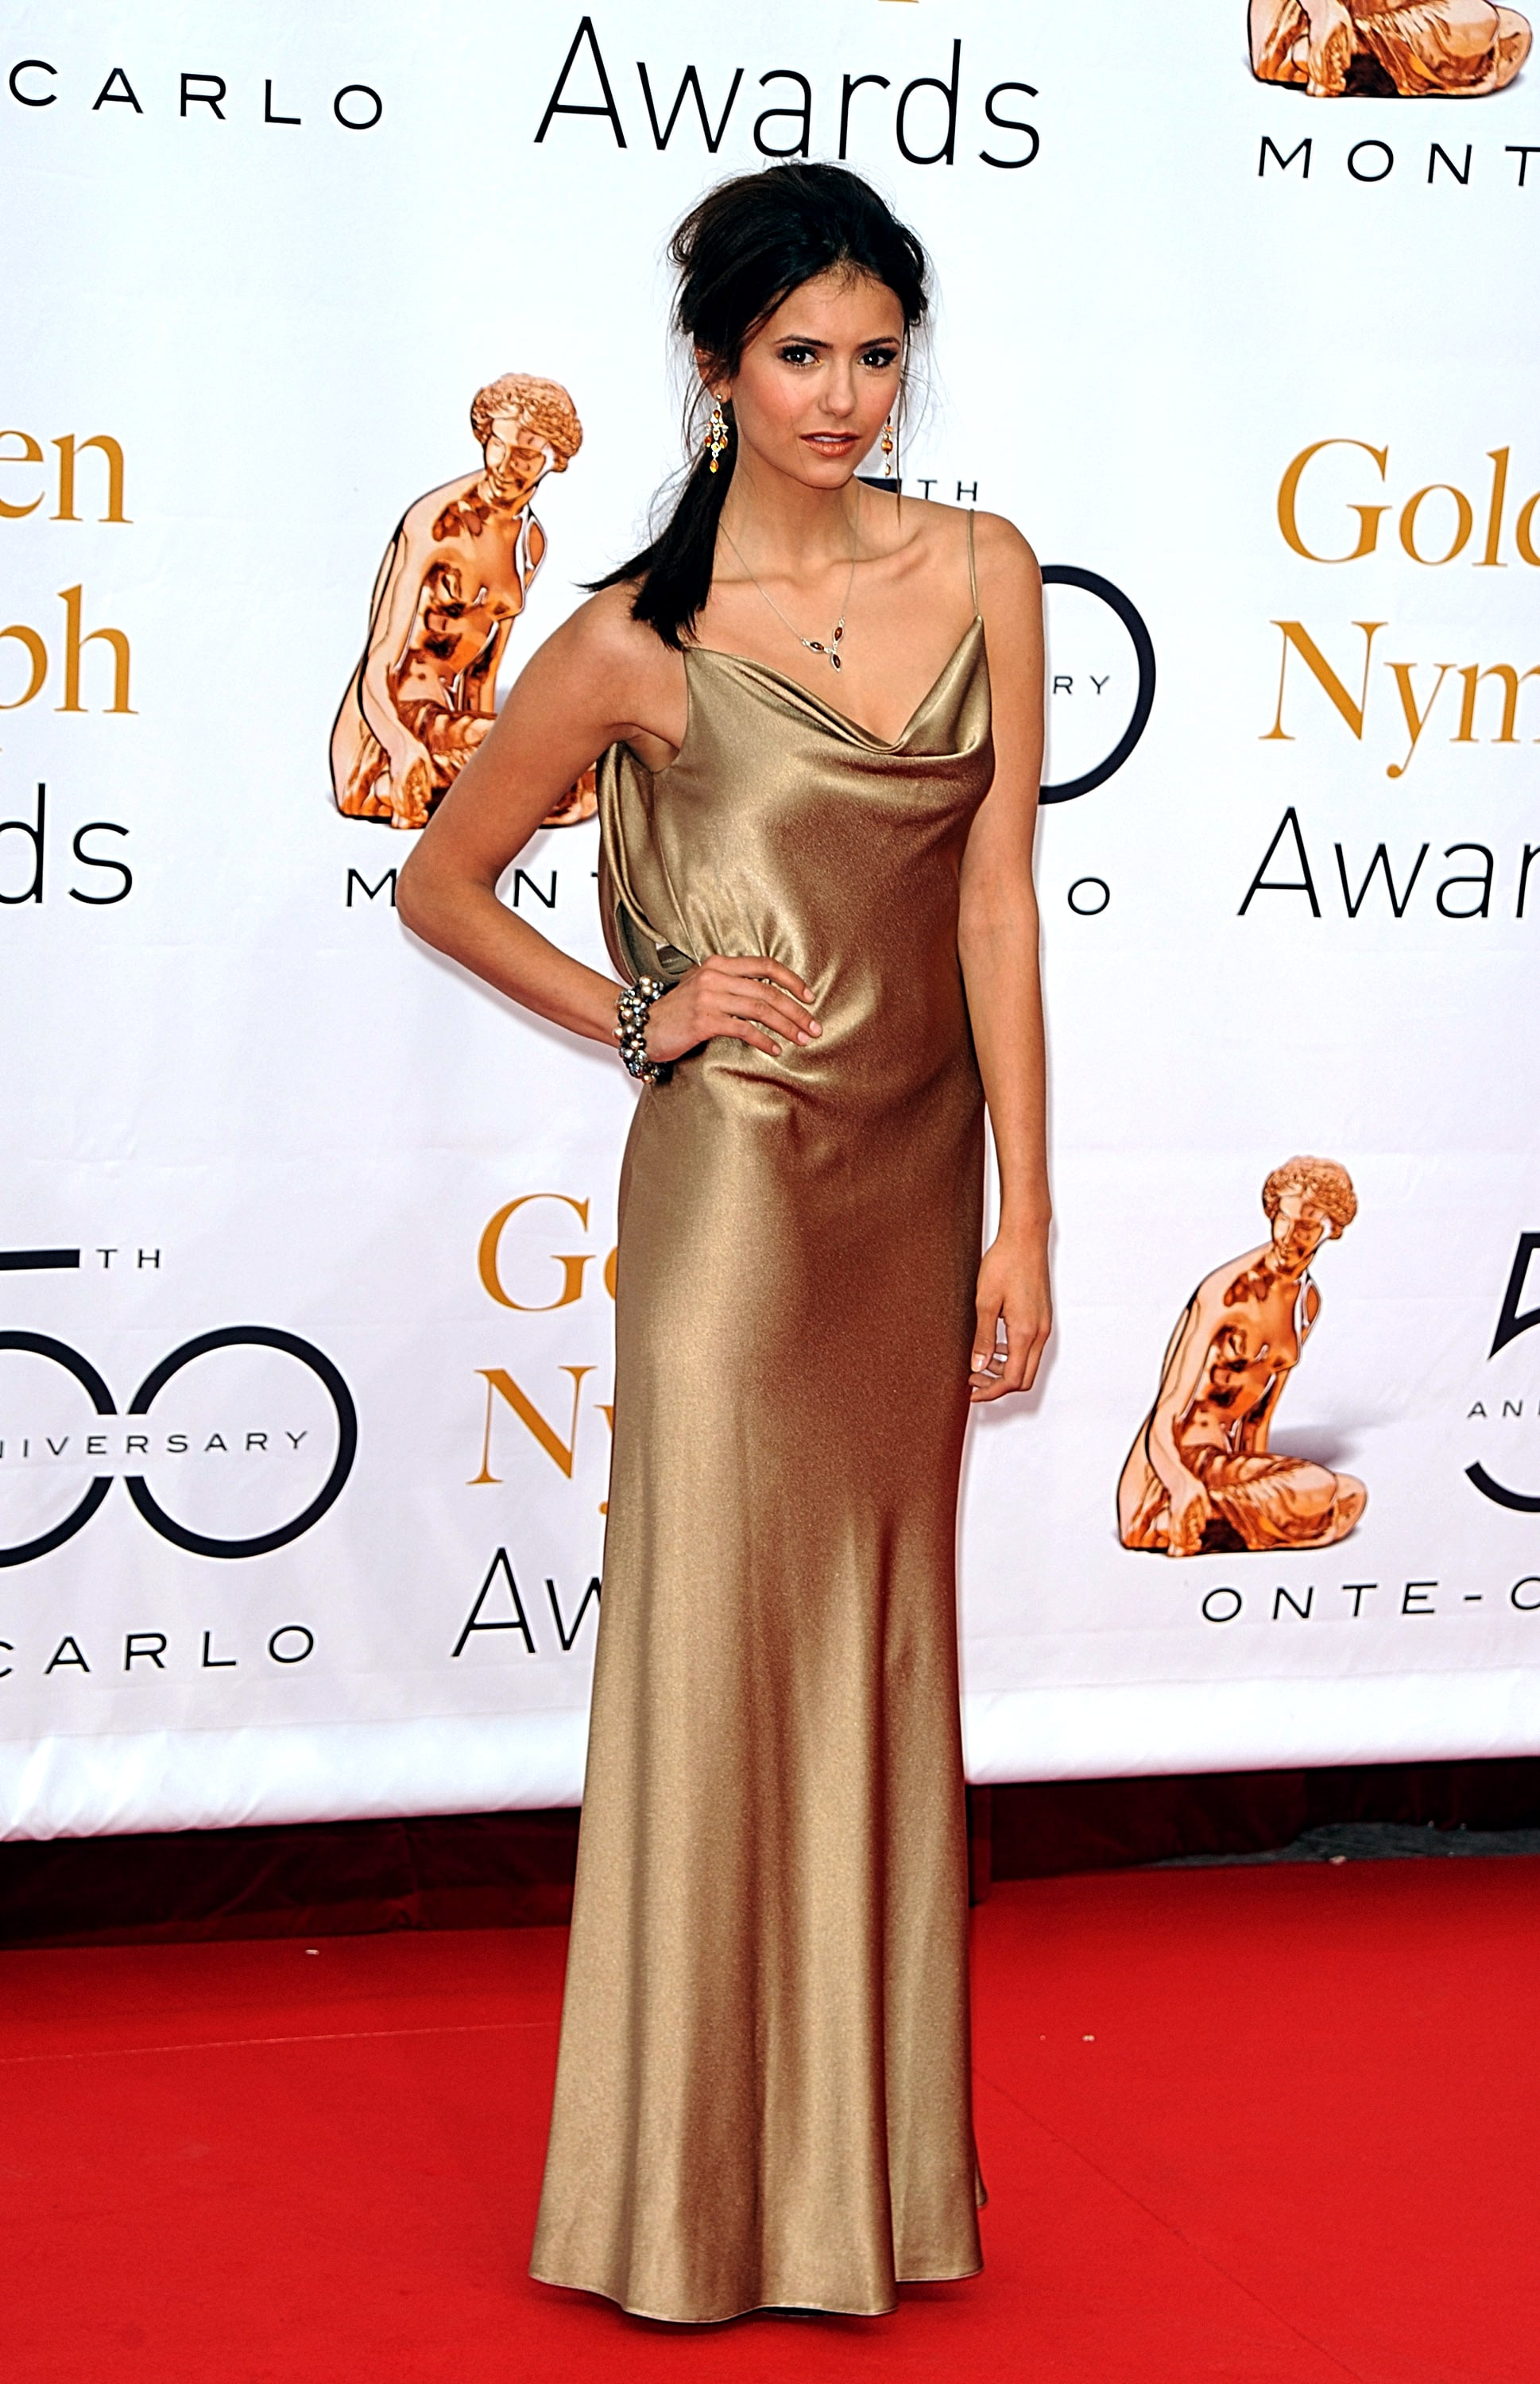 She stunned in a liquid gold gown at the 2010 closing ceremony of the Monte Carlo television festival.